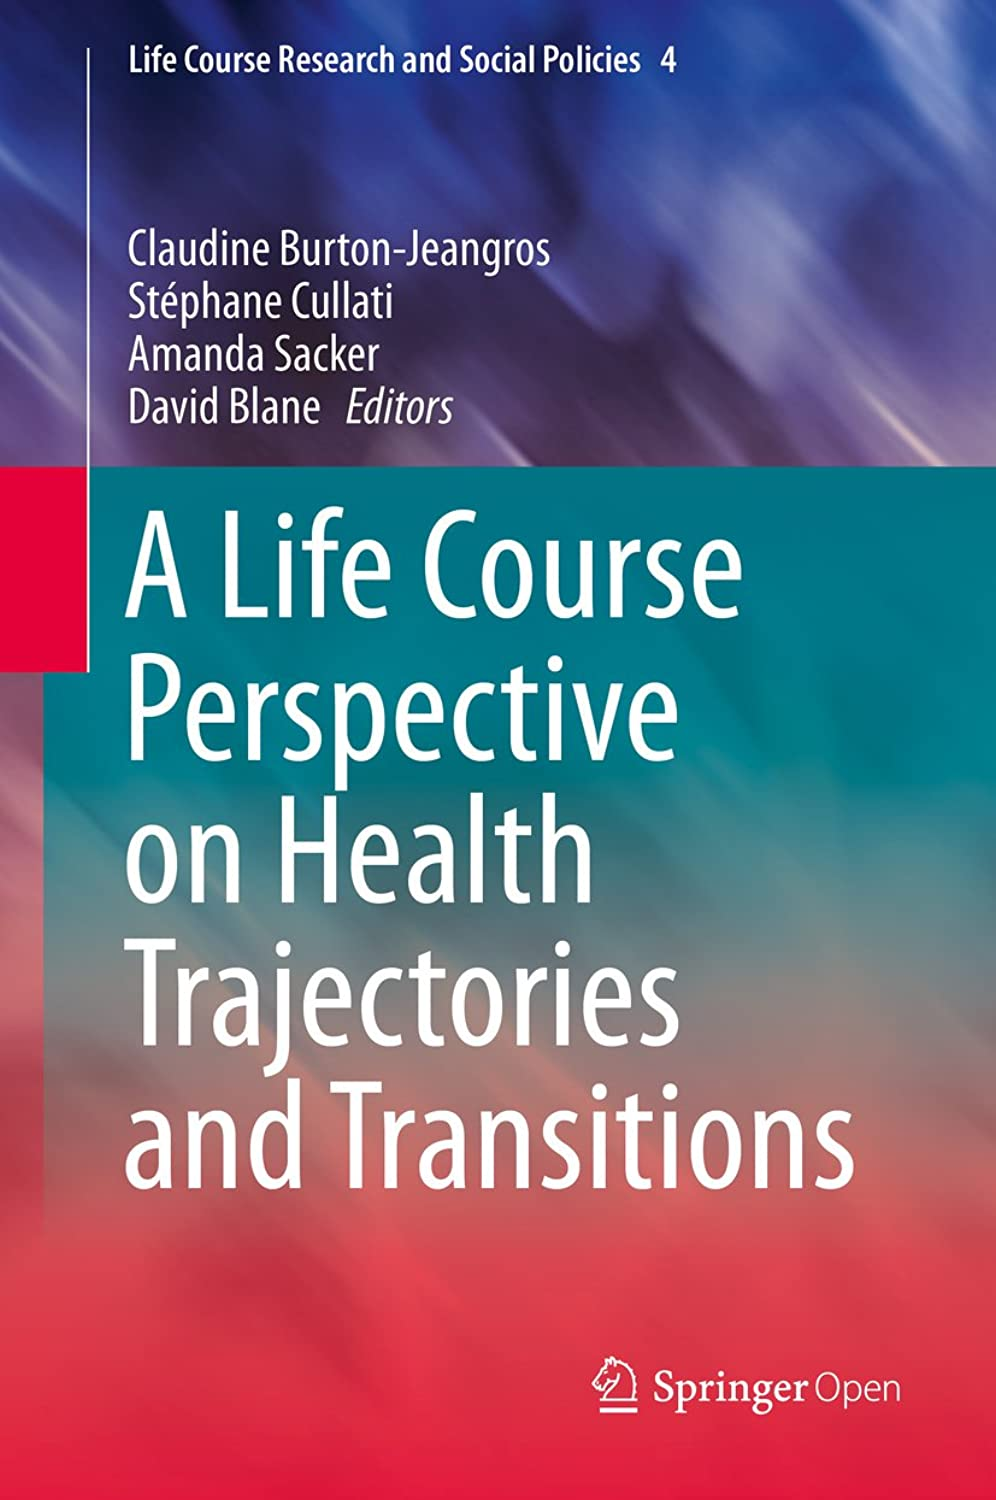 A Life Course Perspective on Health Trajectories and Transitions (Life Course Research and Social Policies Book 4) (English Edition)